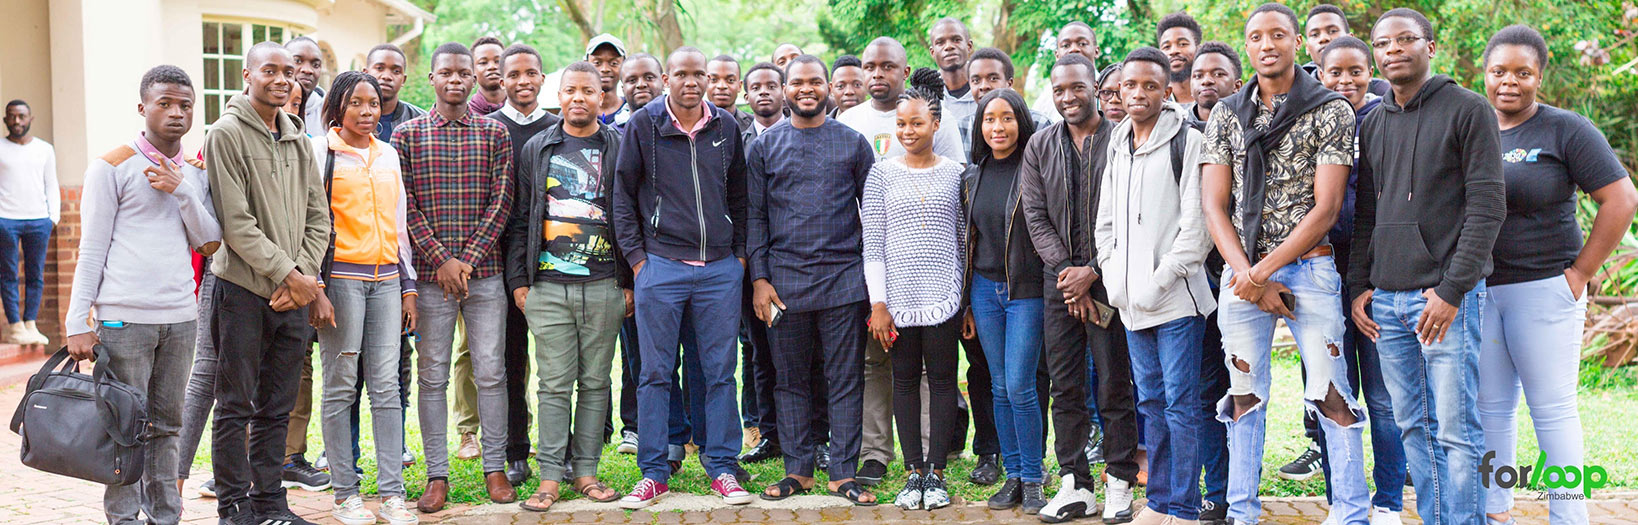 forloopZimbabwe is a community of software developers and tech enthusiasts from Zimbabwe.